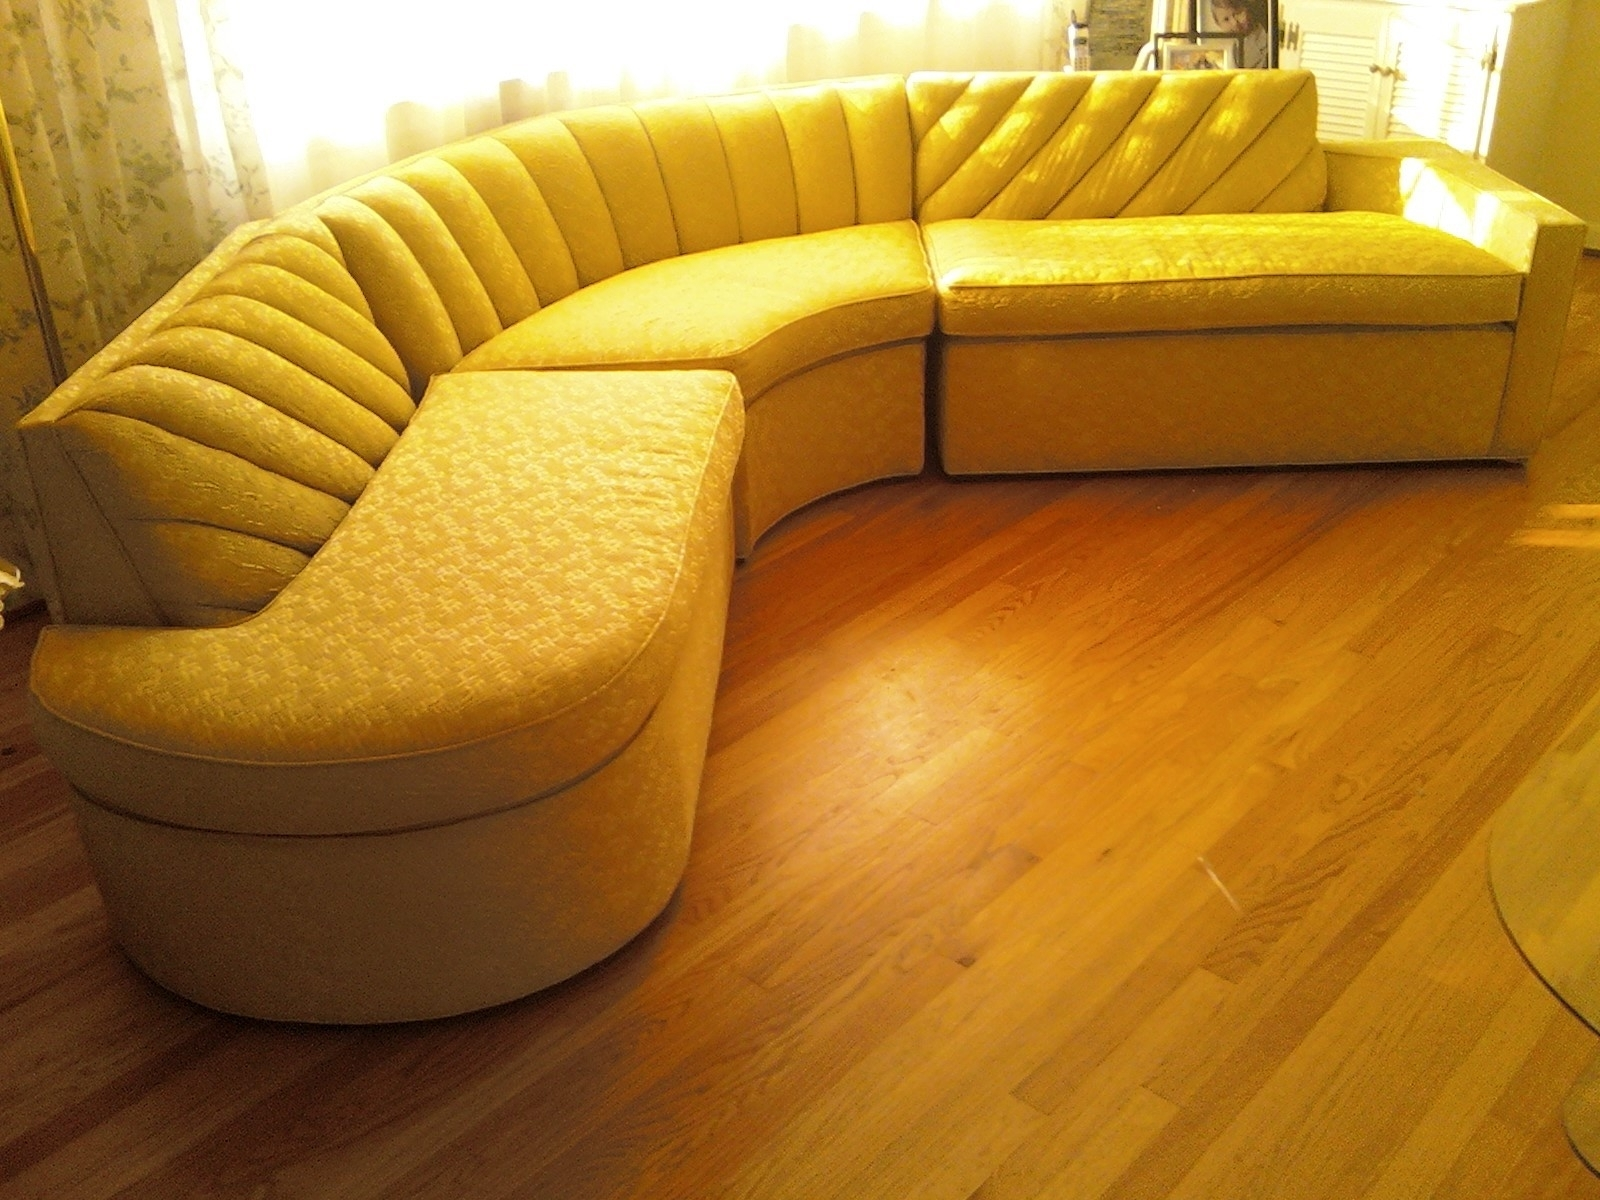 Vintage Sectional Sofas With Popular Vintage Sectional Sofa – Modern Danish Furniture — All About Home (View 19 of 20)